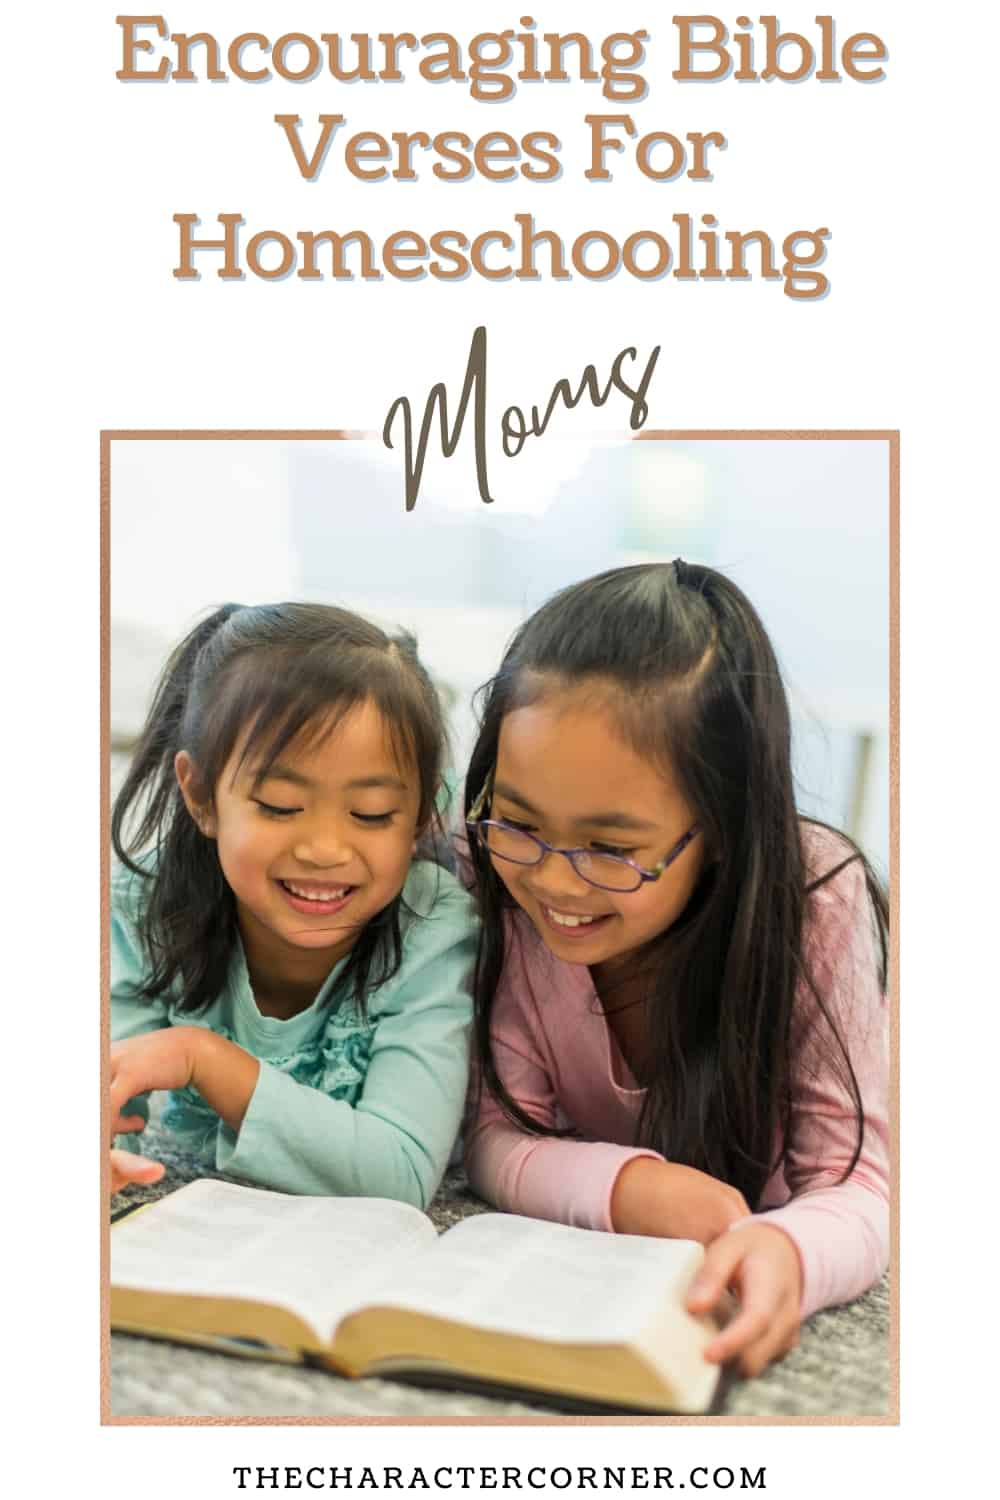 daughters reading to each other text on image reads 20 Encouraging Bible Verses For Homeschooling Moms